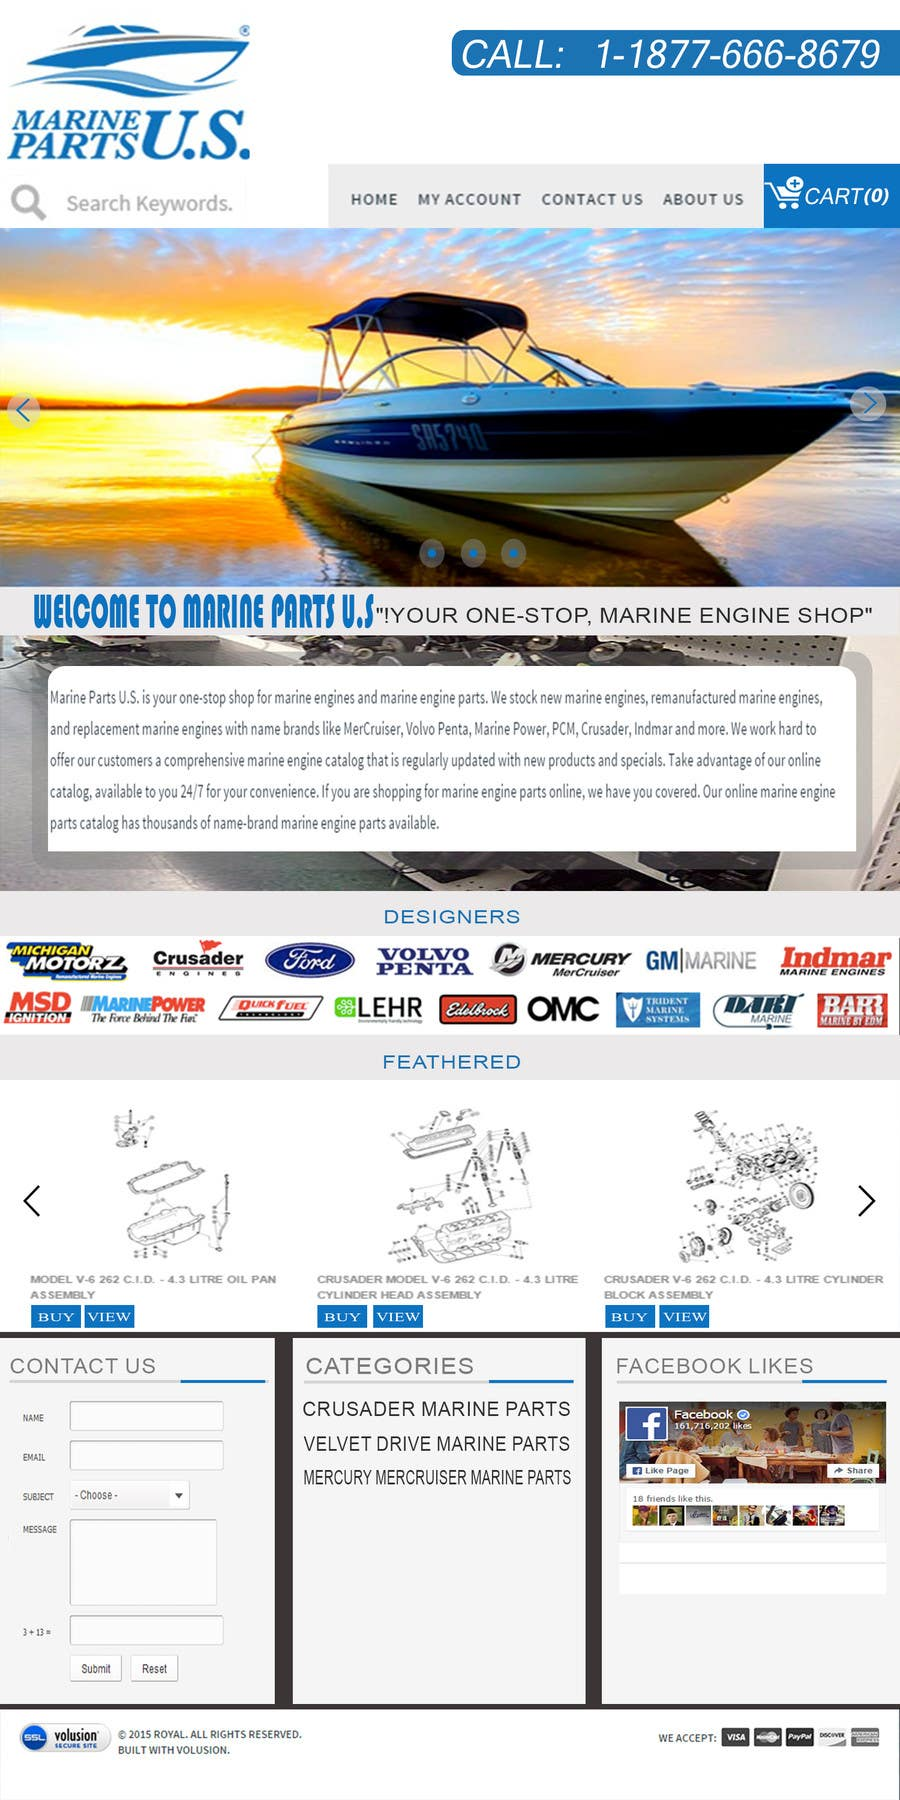 Konkurrenceindlæg #5 for Design a Website Mockup for Marine Parts U.S.